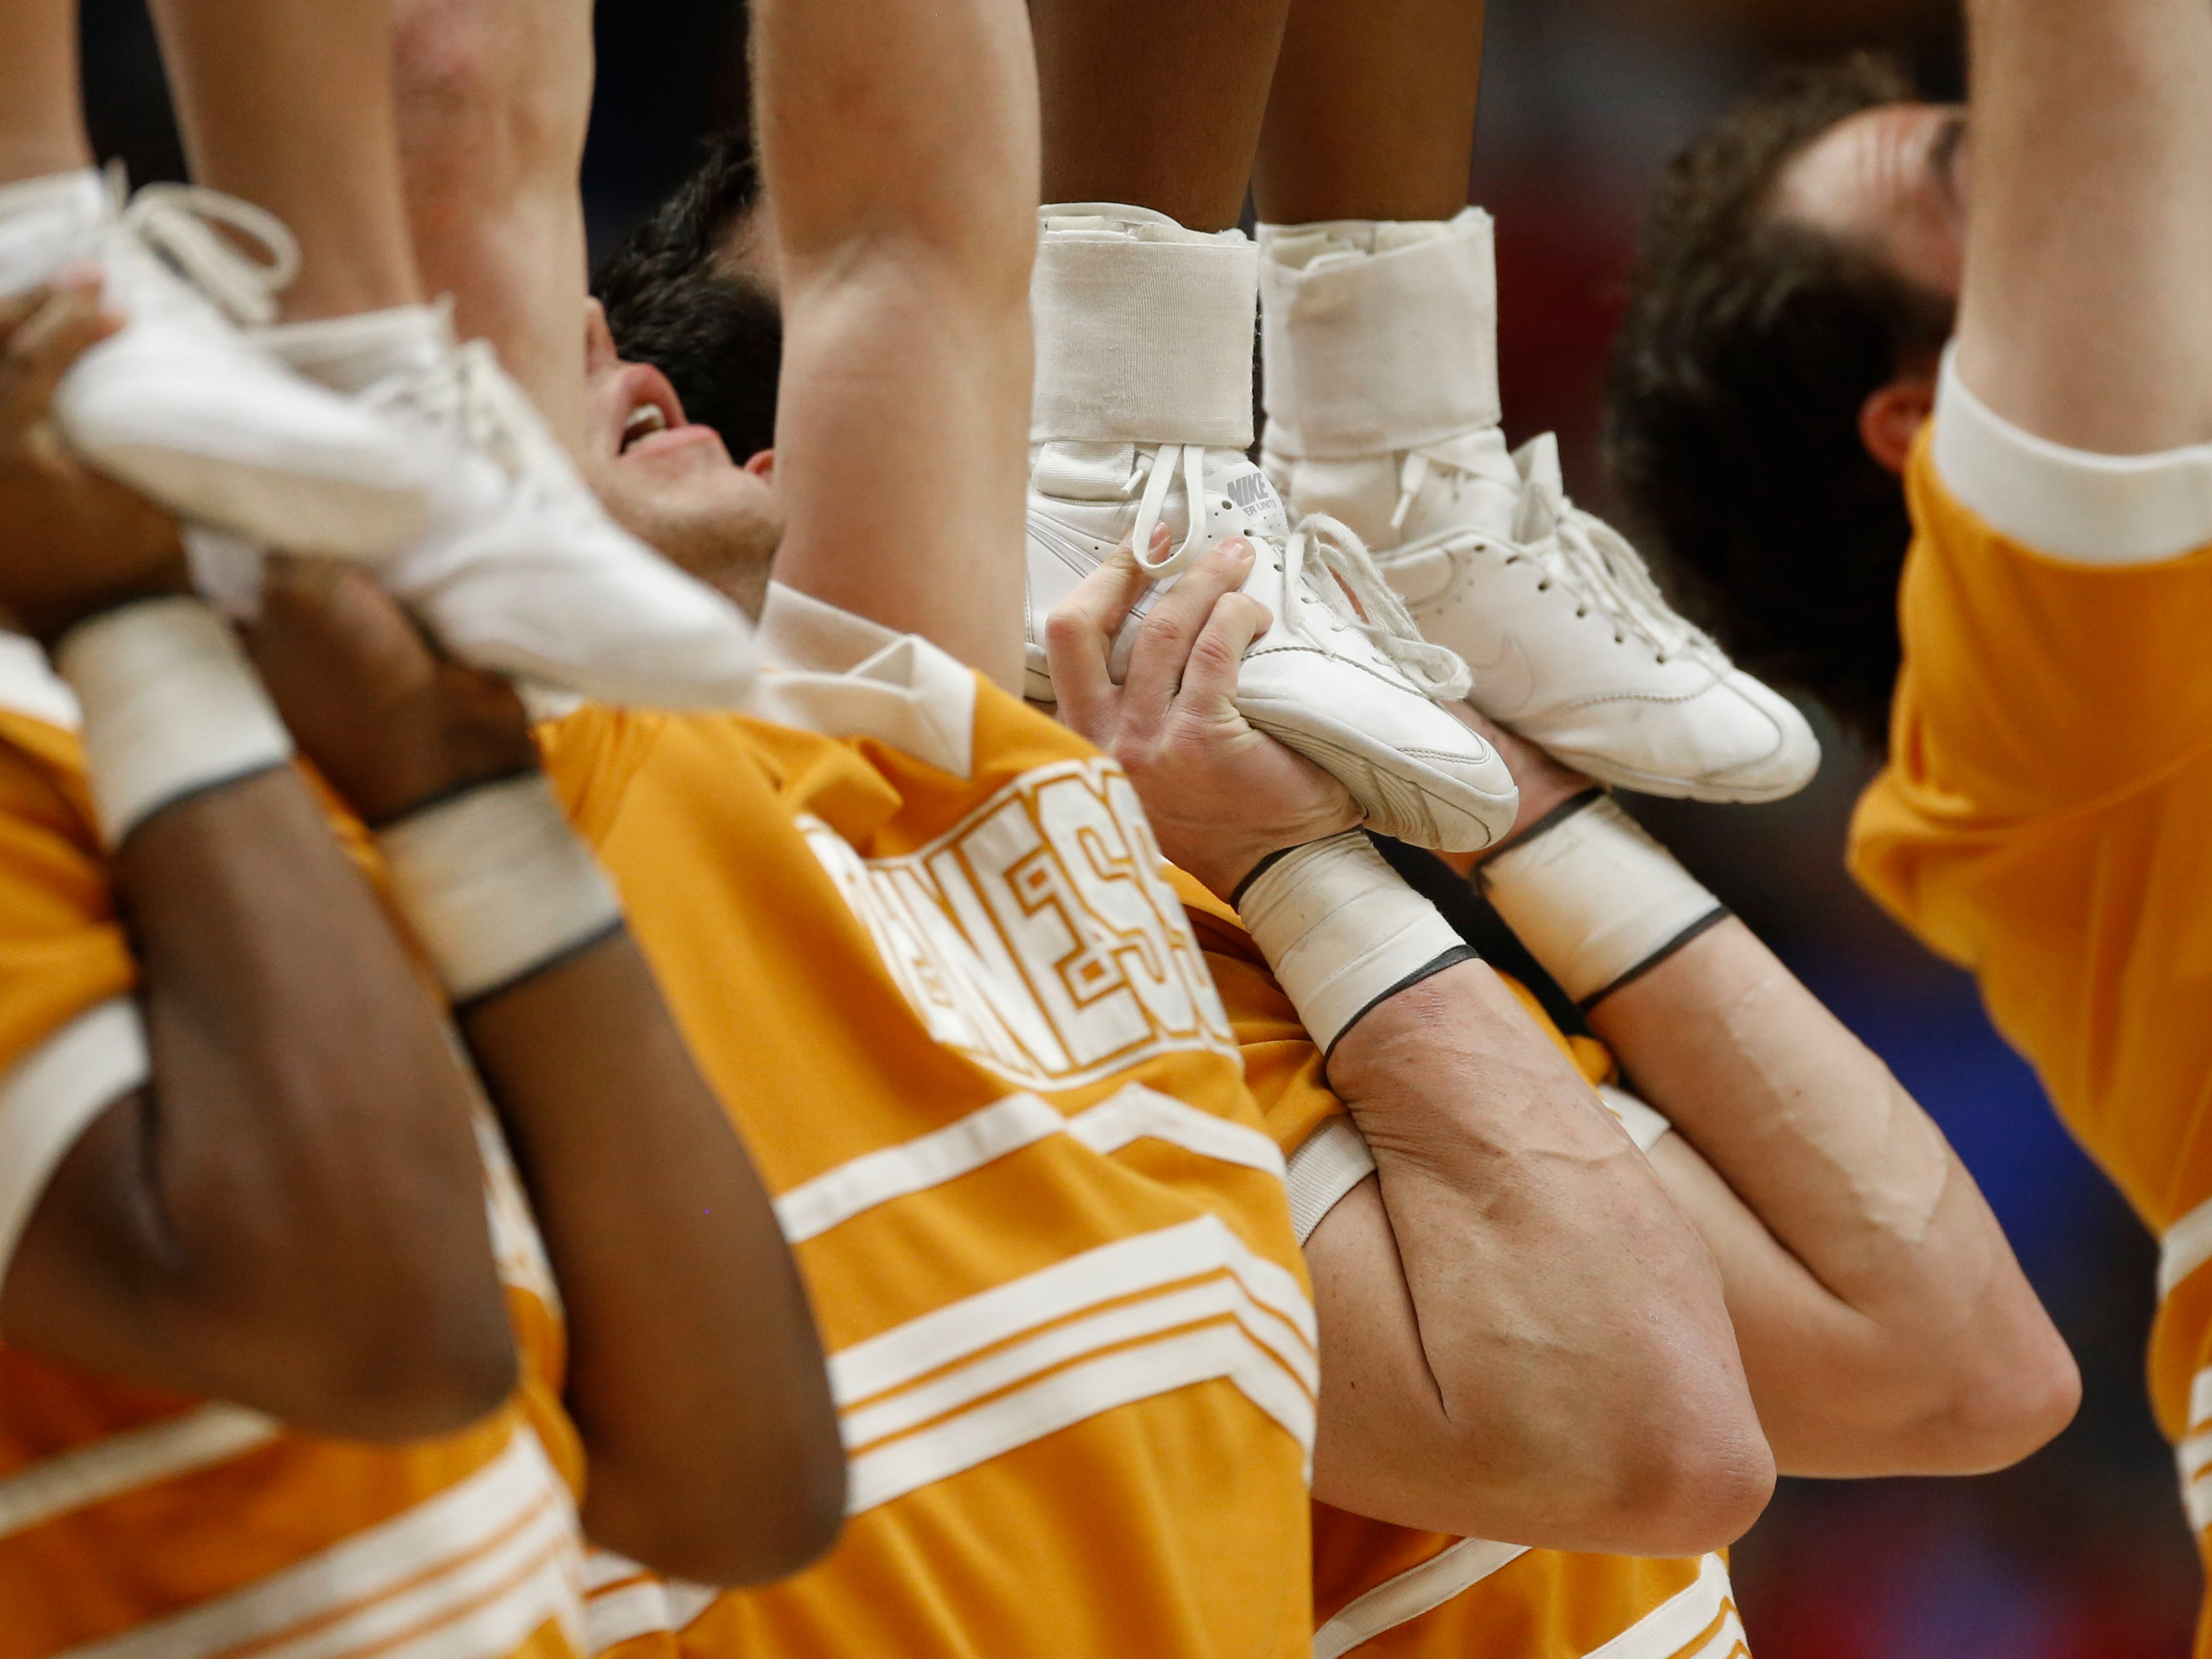 Tennessee cheerleaders perform during the first half of an NCAA college basketball gameagainst LSU in the Southeastern Conference tournament in Nashville, Tenn., Friday, March 11, 2016. (AP Photo/John Bazemore)